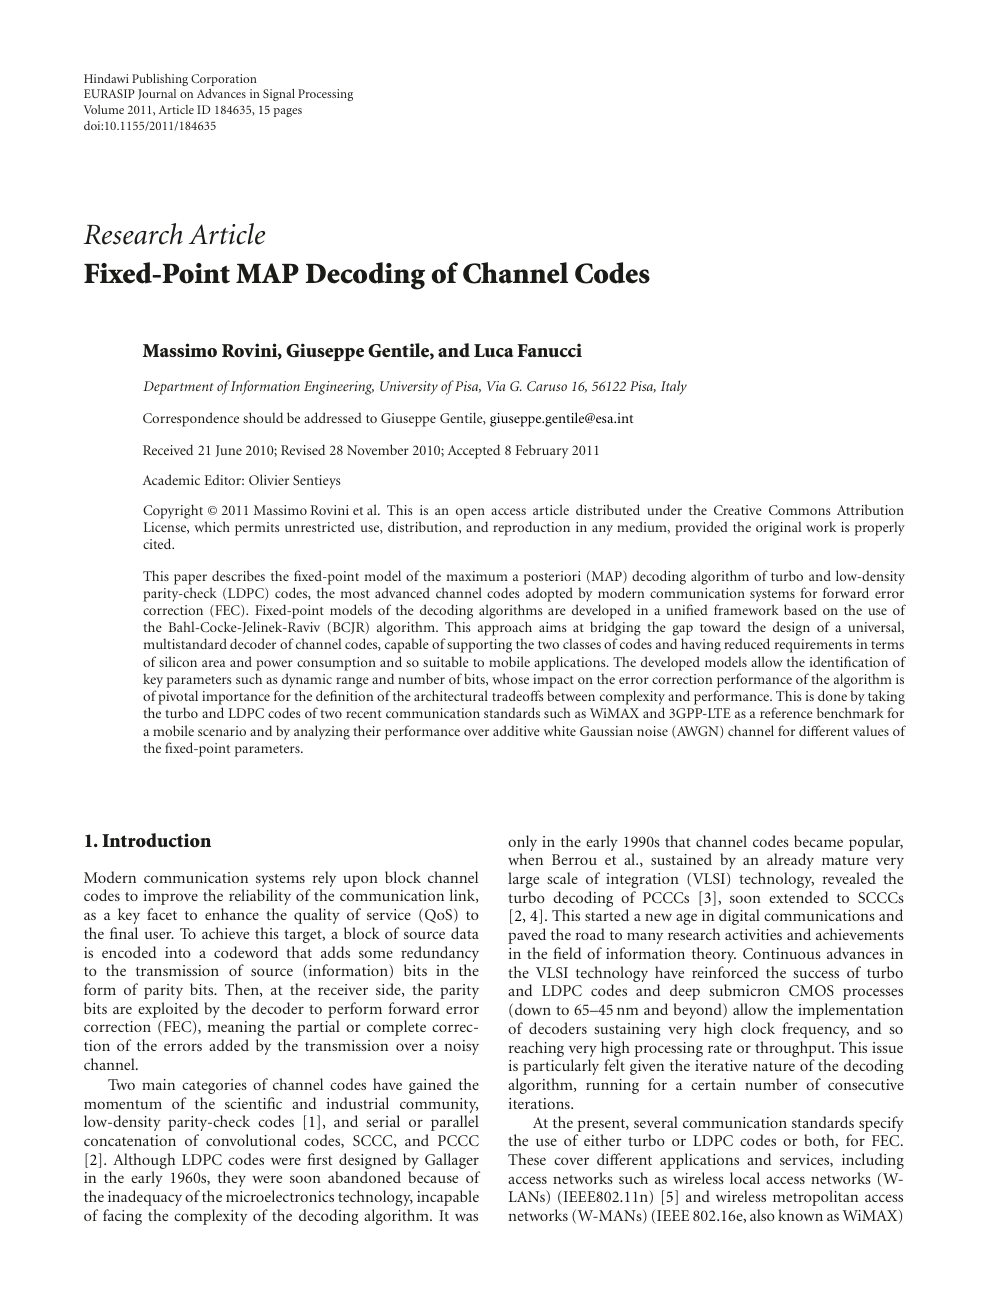 Fixed-Point MAP Decoding of Channel Codes – topic of research paper